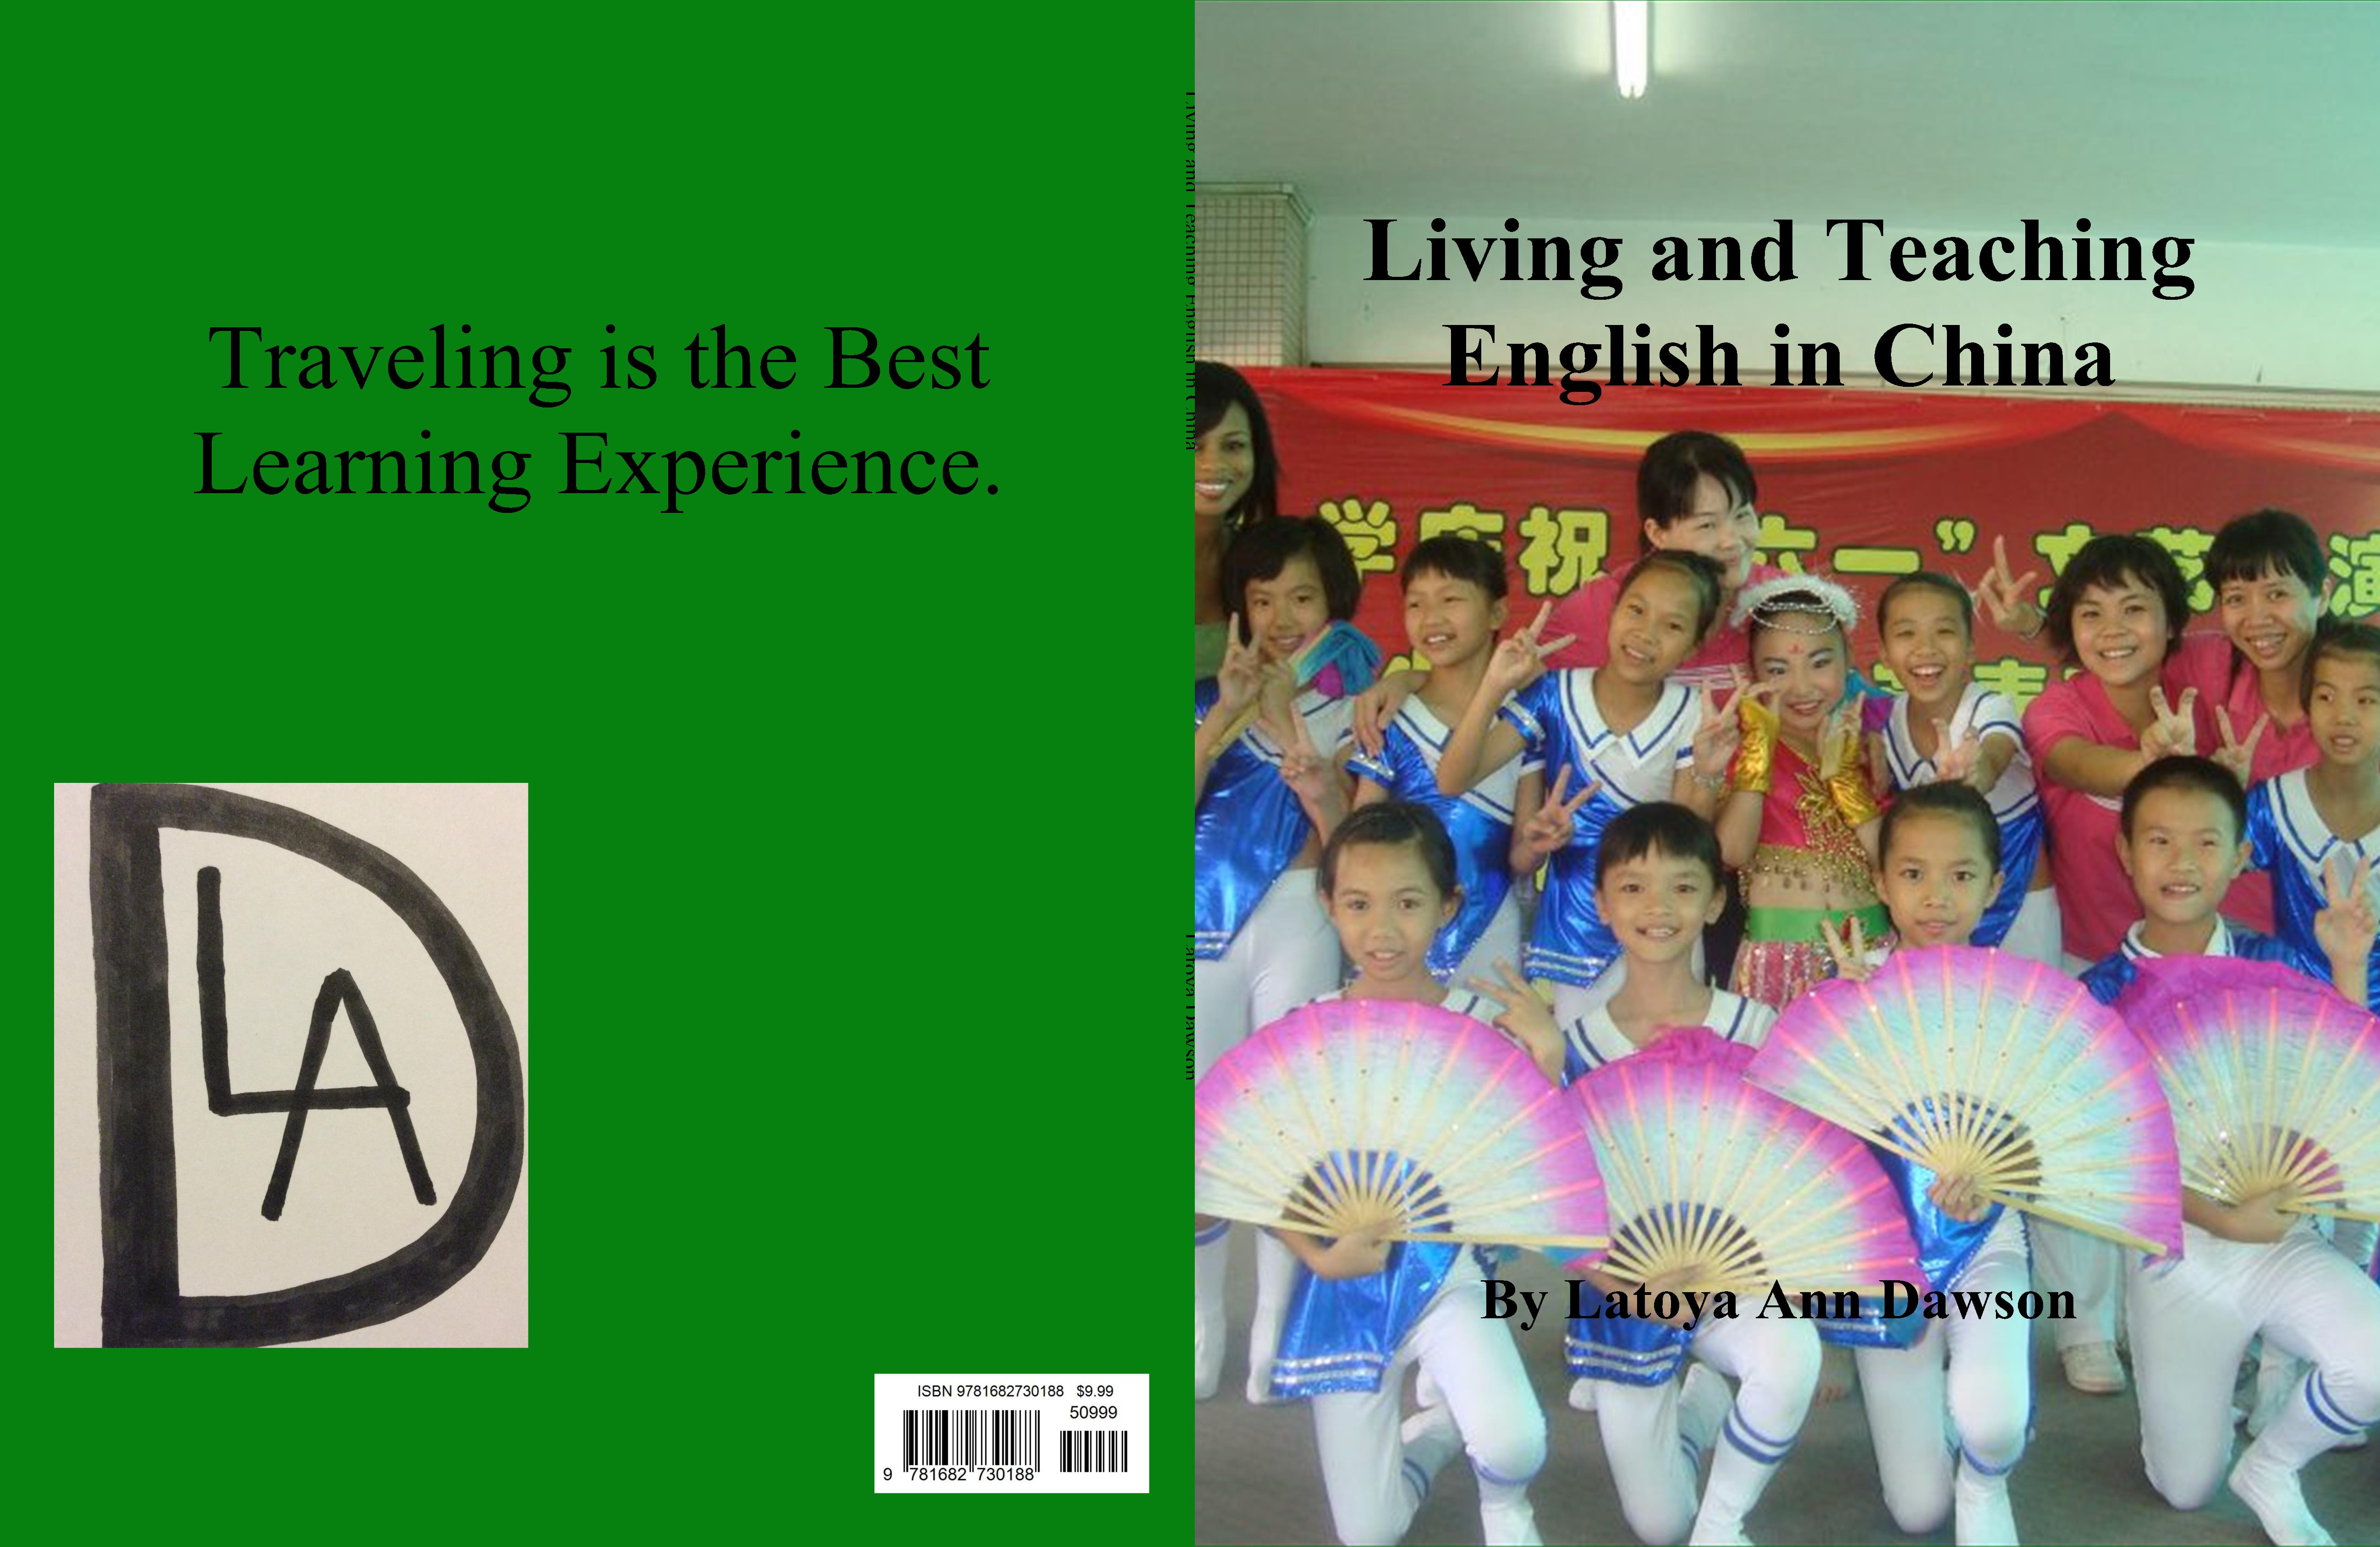 Living and Teaching English in China cover image